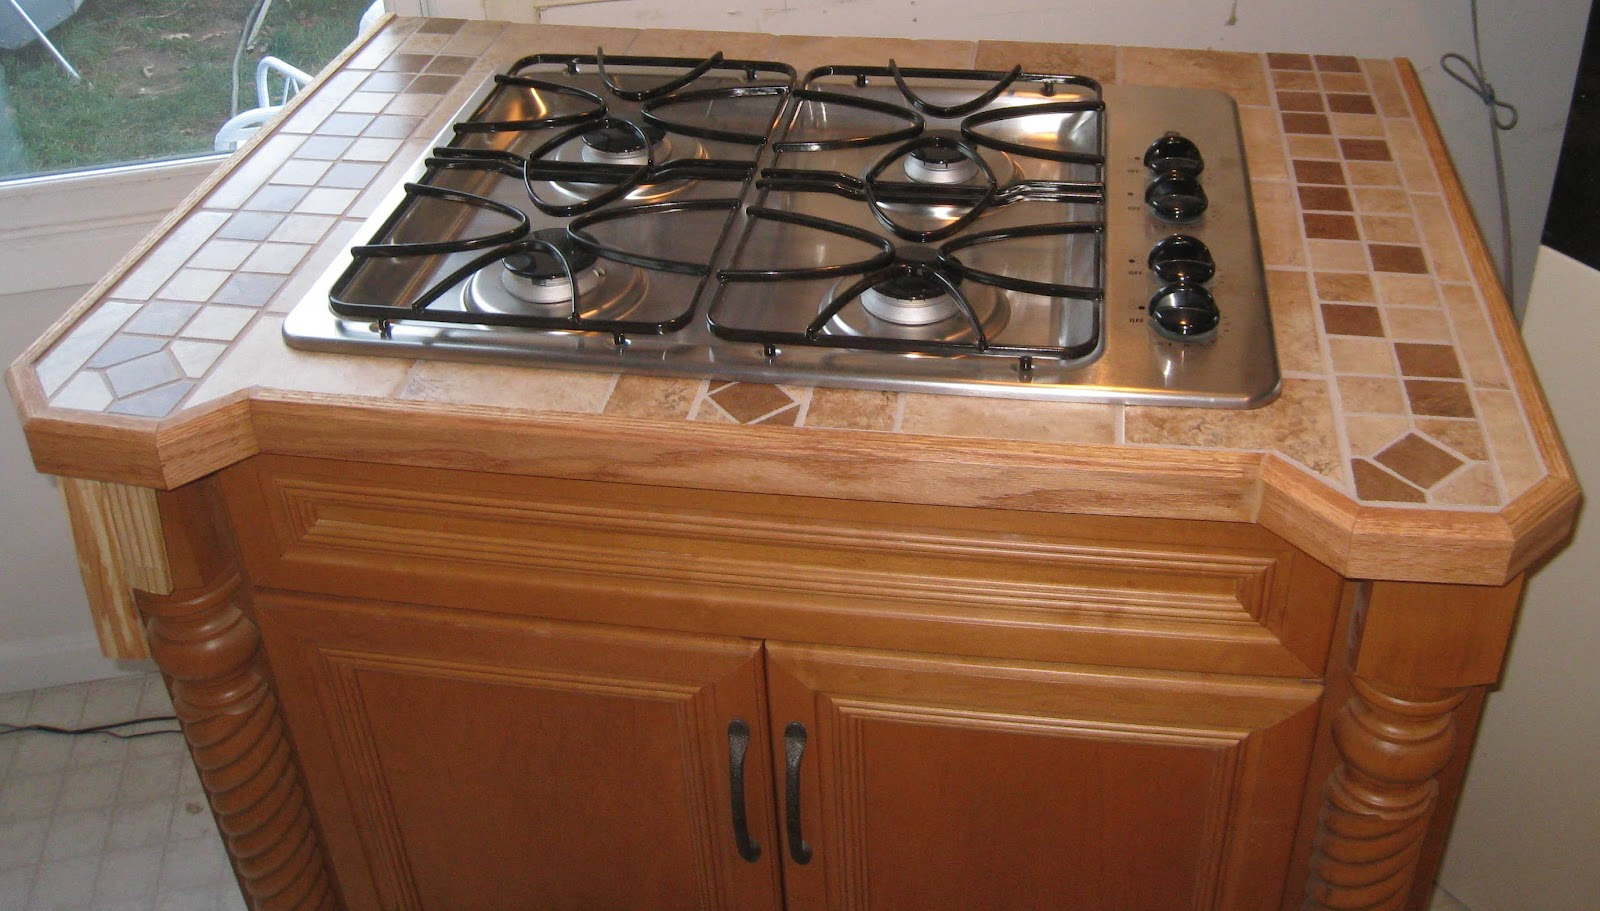 Wood Countertop With Stove : ... /wood-countertop-options/wood-countertops-with-sinks-and-stoves